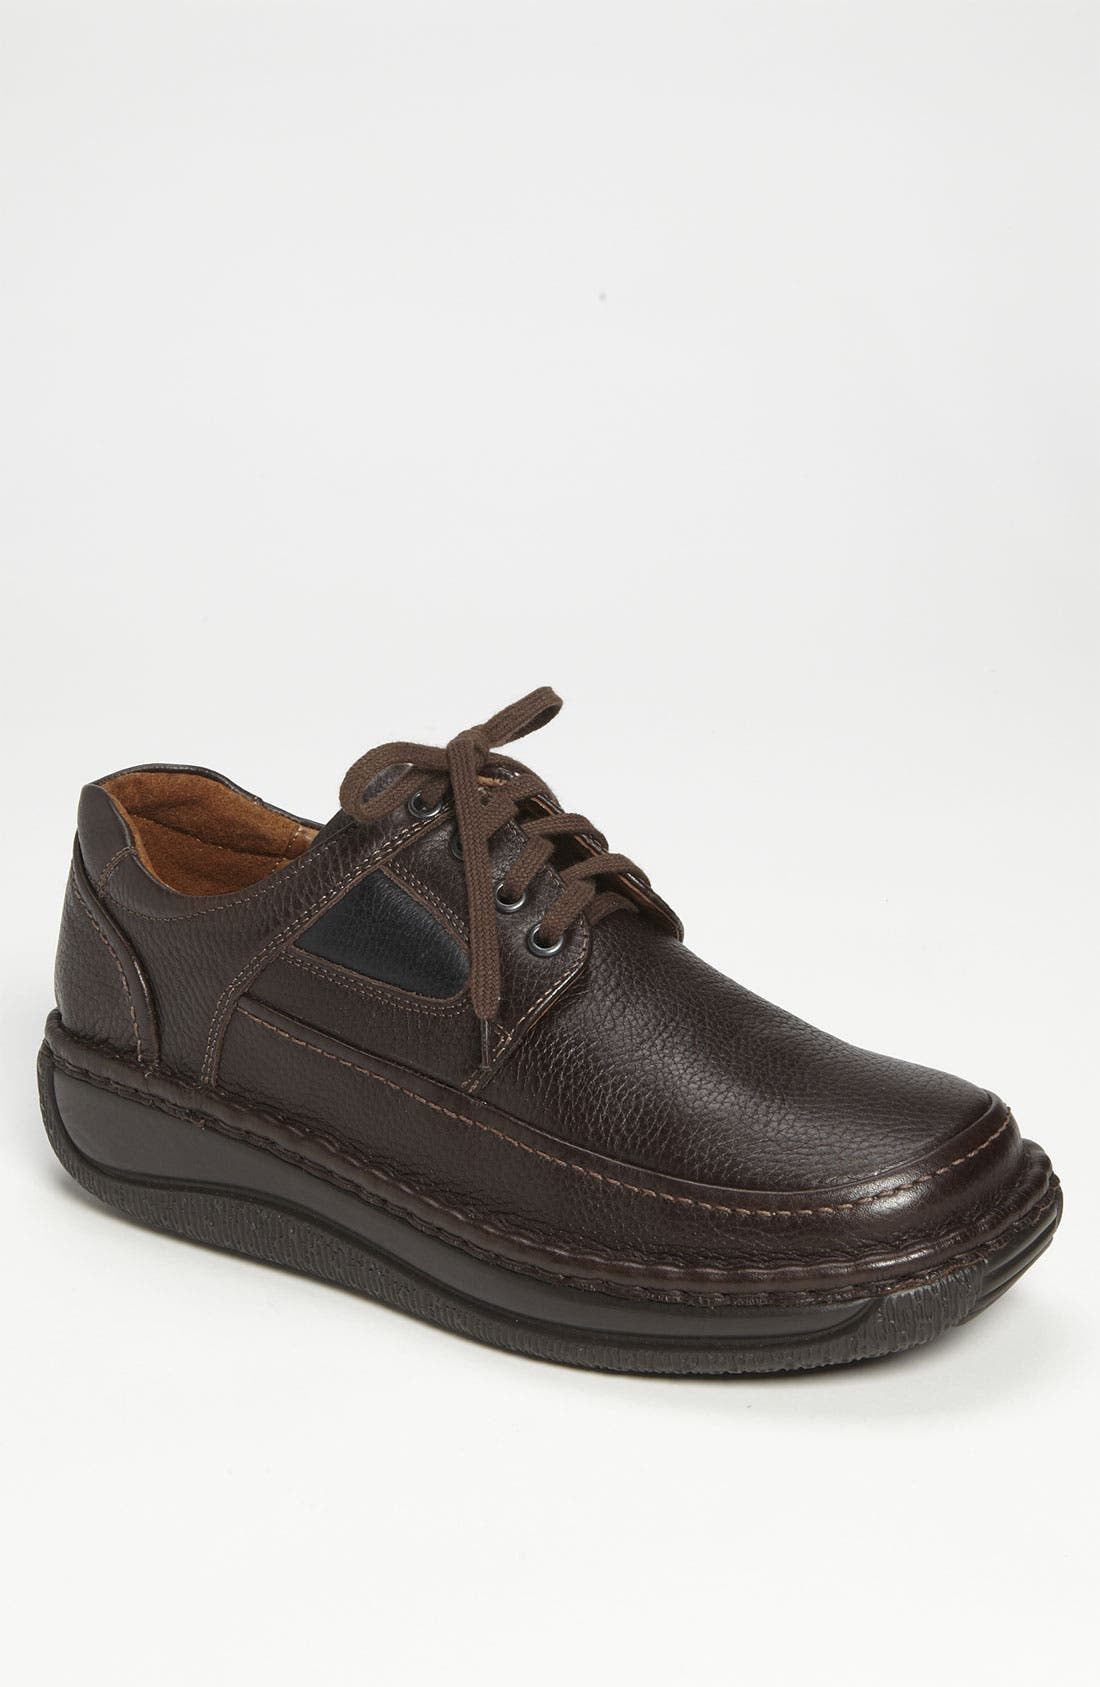 Alternate Image 1 Selected - Josef Seibel 'Gerald' Moc Toe Sneaker